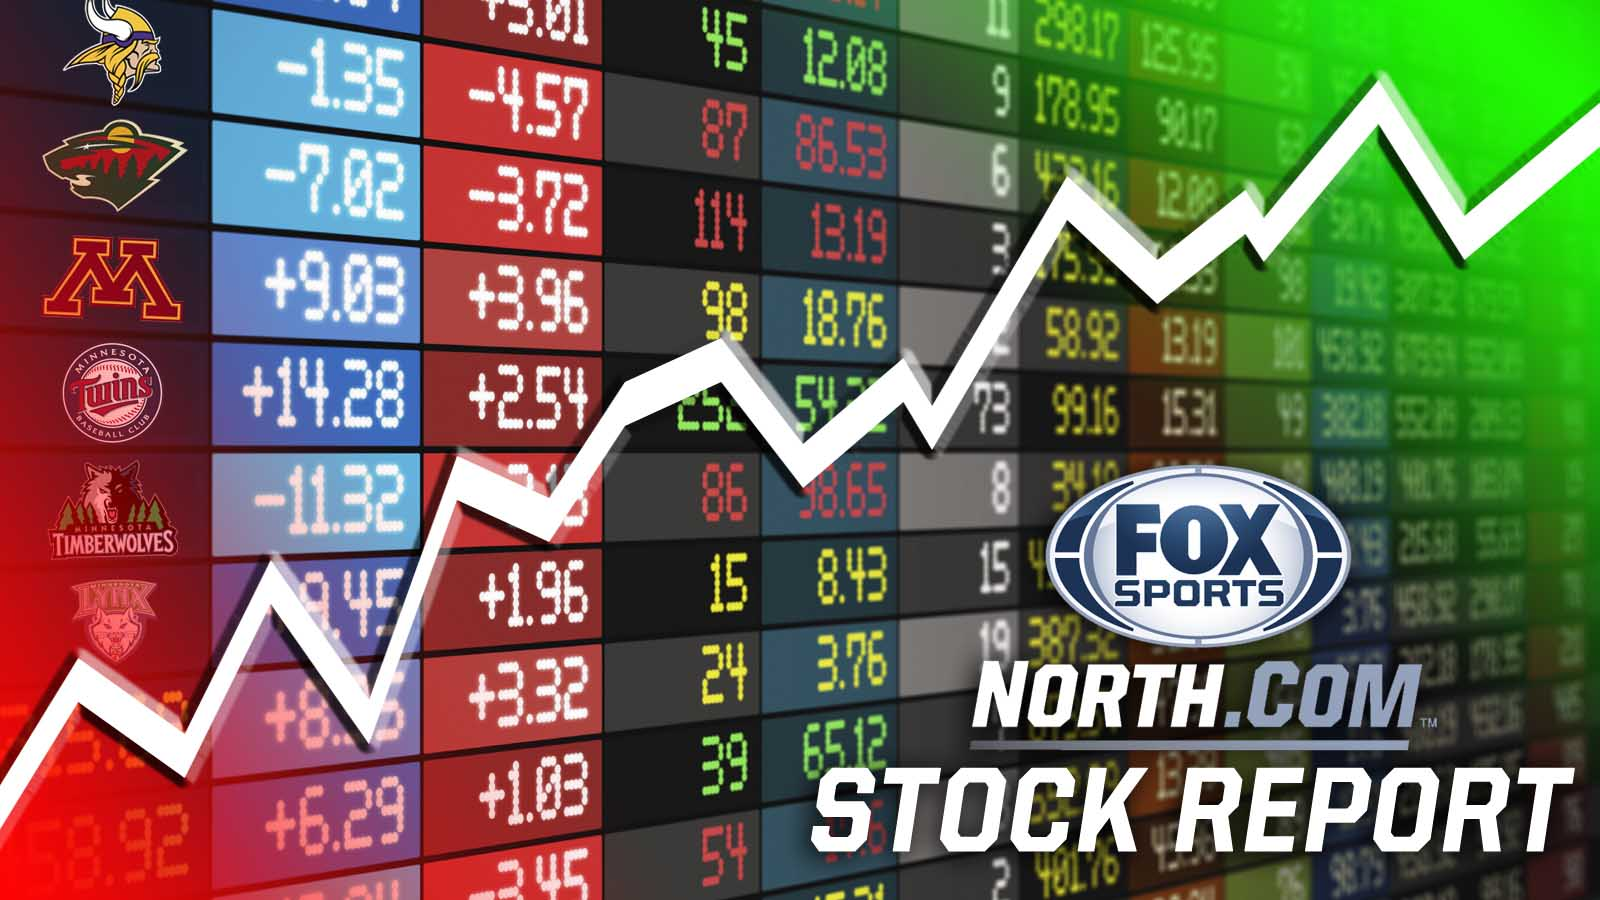 FOX Sports North Midweek Stock Report for March 16